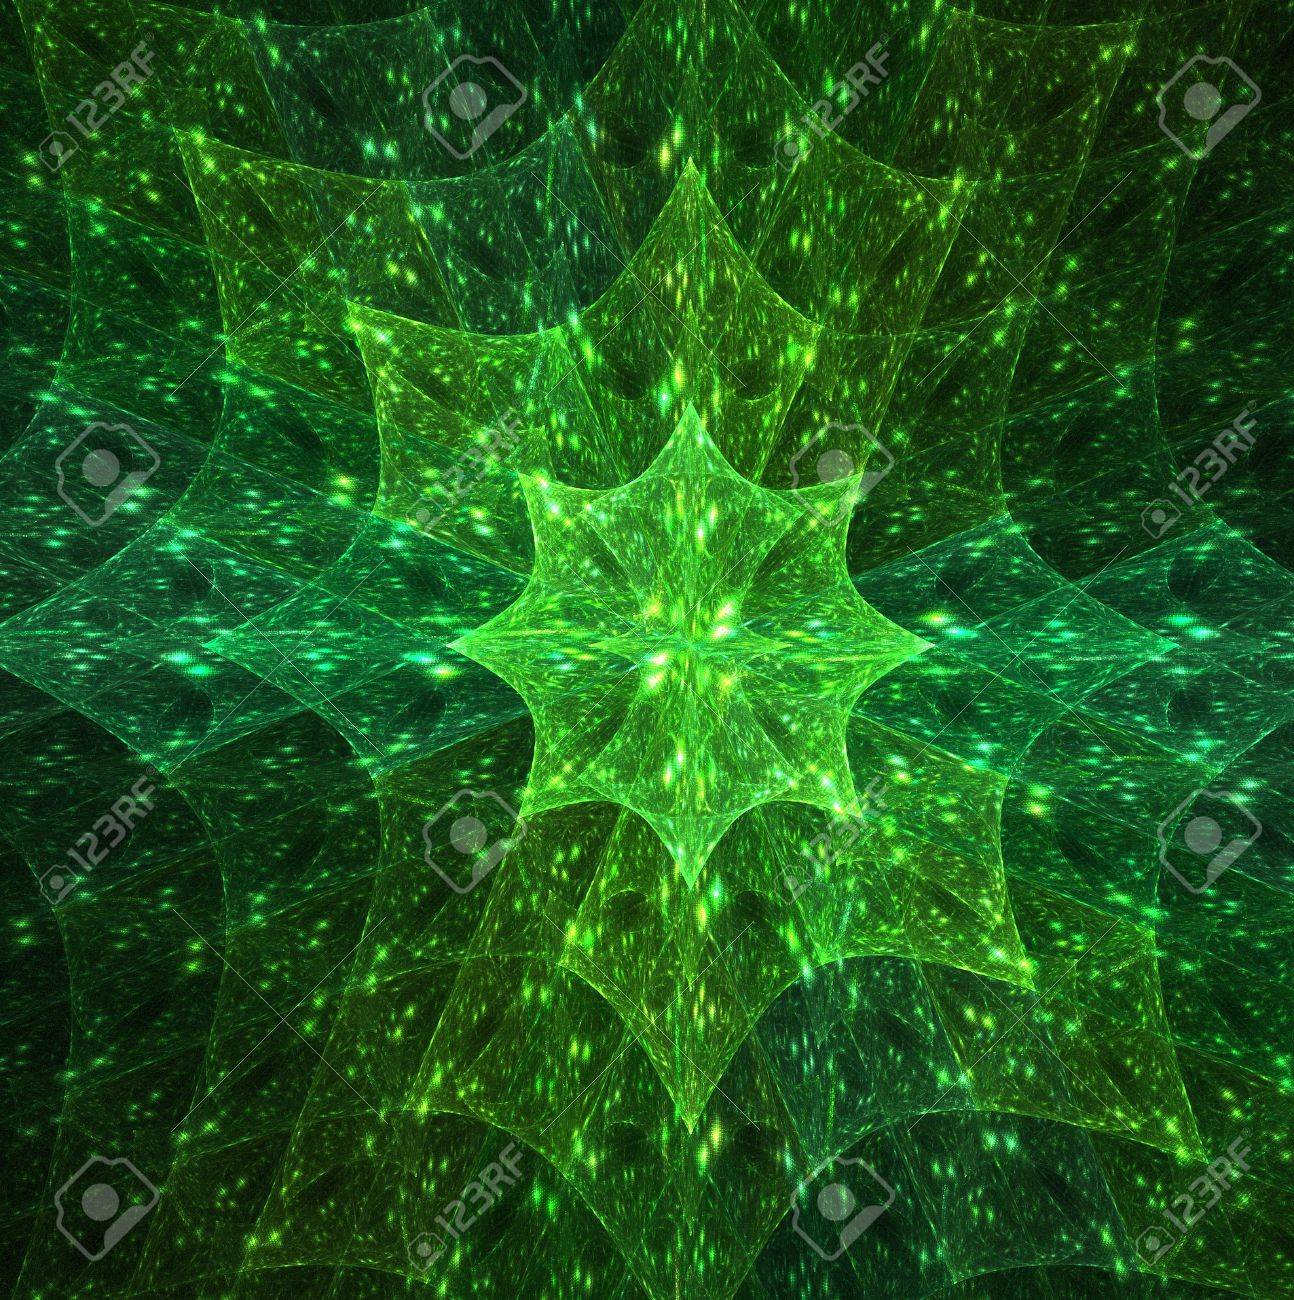 A green star like flower on this fractal design. Stock Photo - 6222948